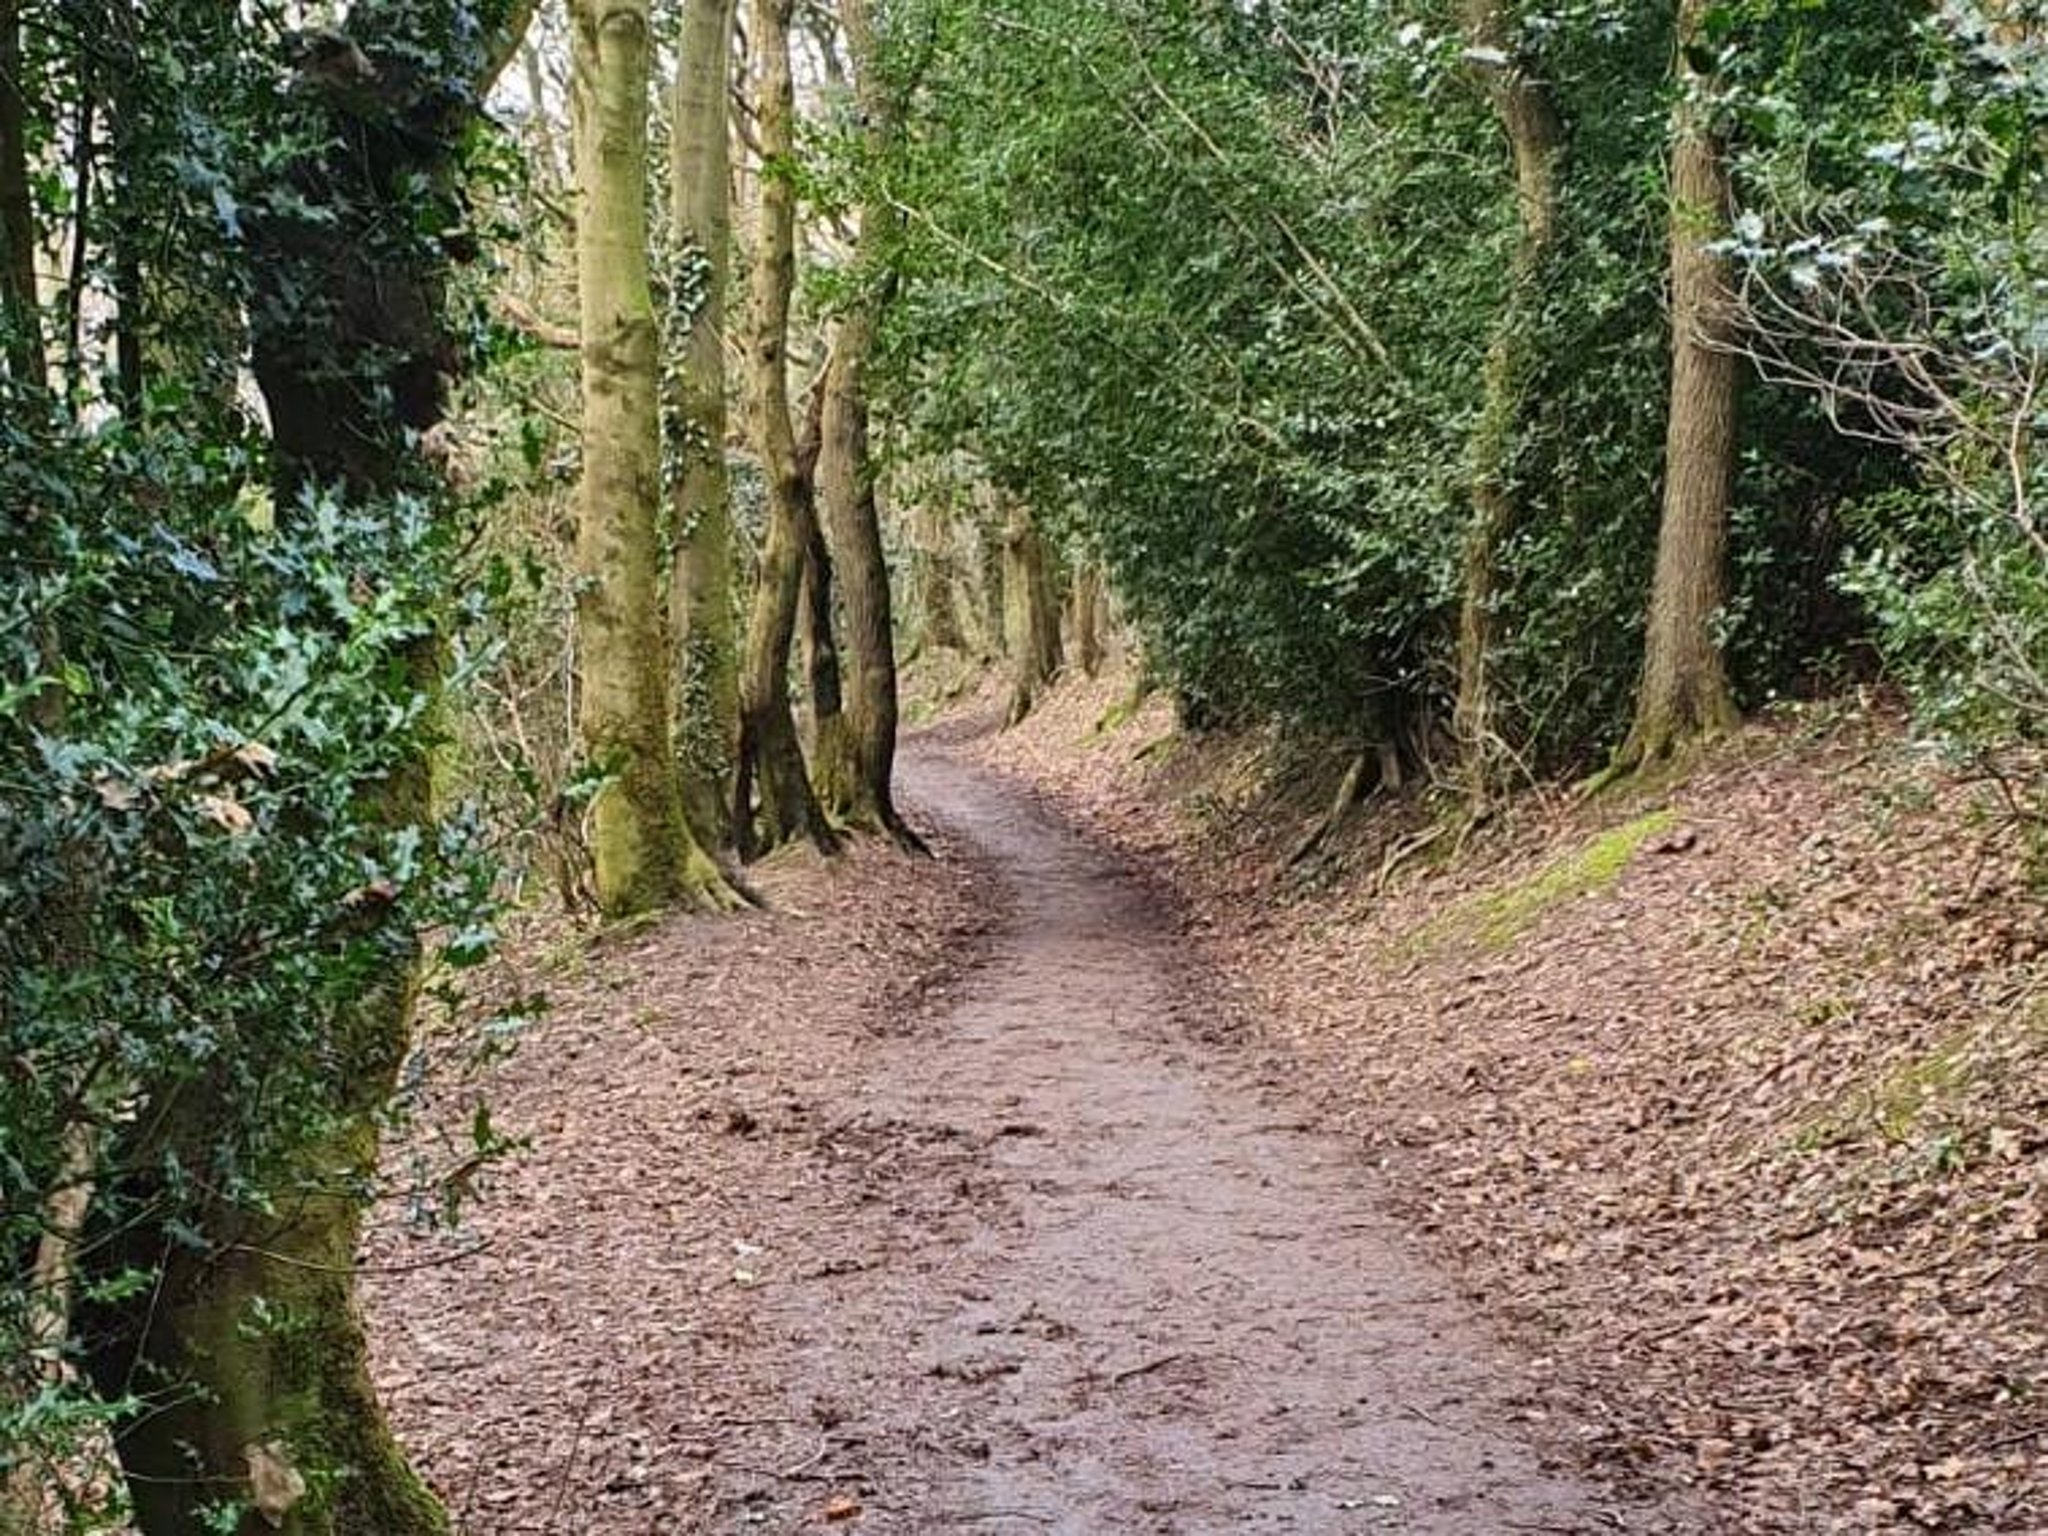 Campaign hopes to raise £20,000 to save much-loved Sheffield woods from 'big-boy developers'